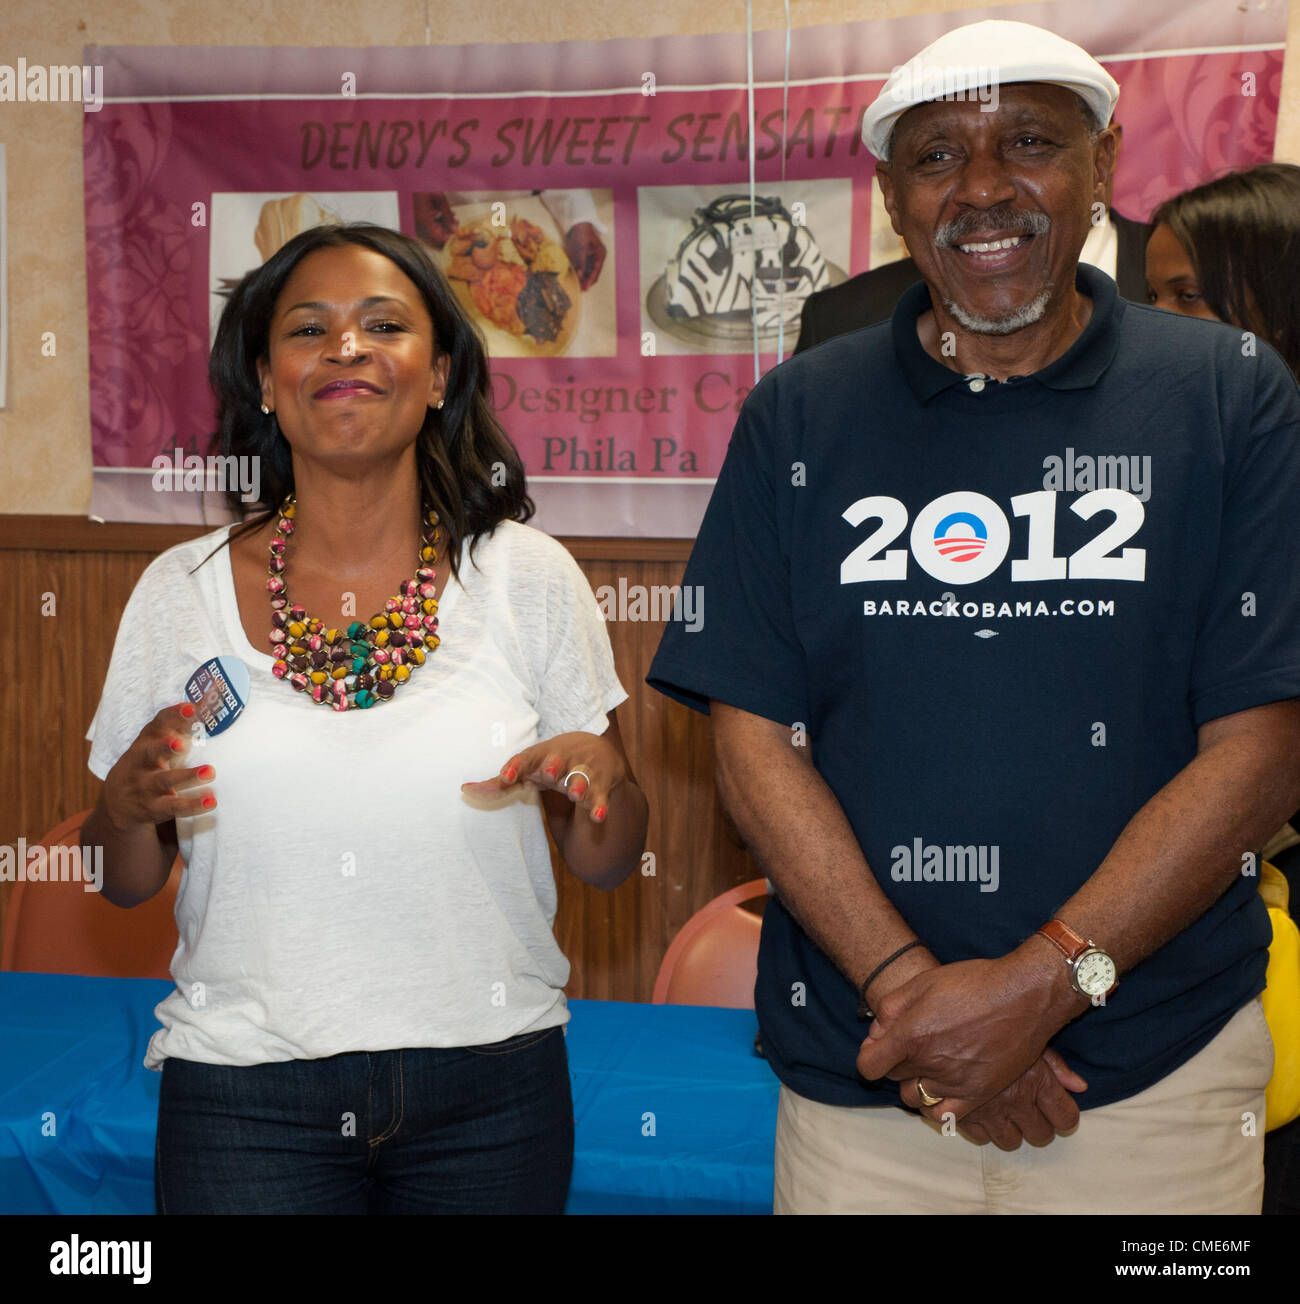 July 28, 2012 - Actress, NIA LONG, at Denby's Restaurant with her Stock Photo: 47026463 - Alamy